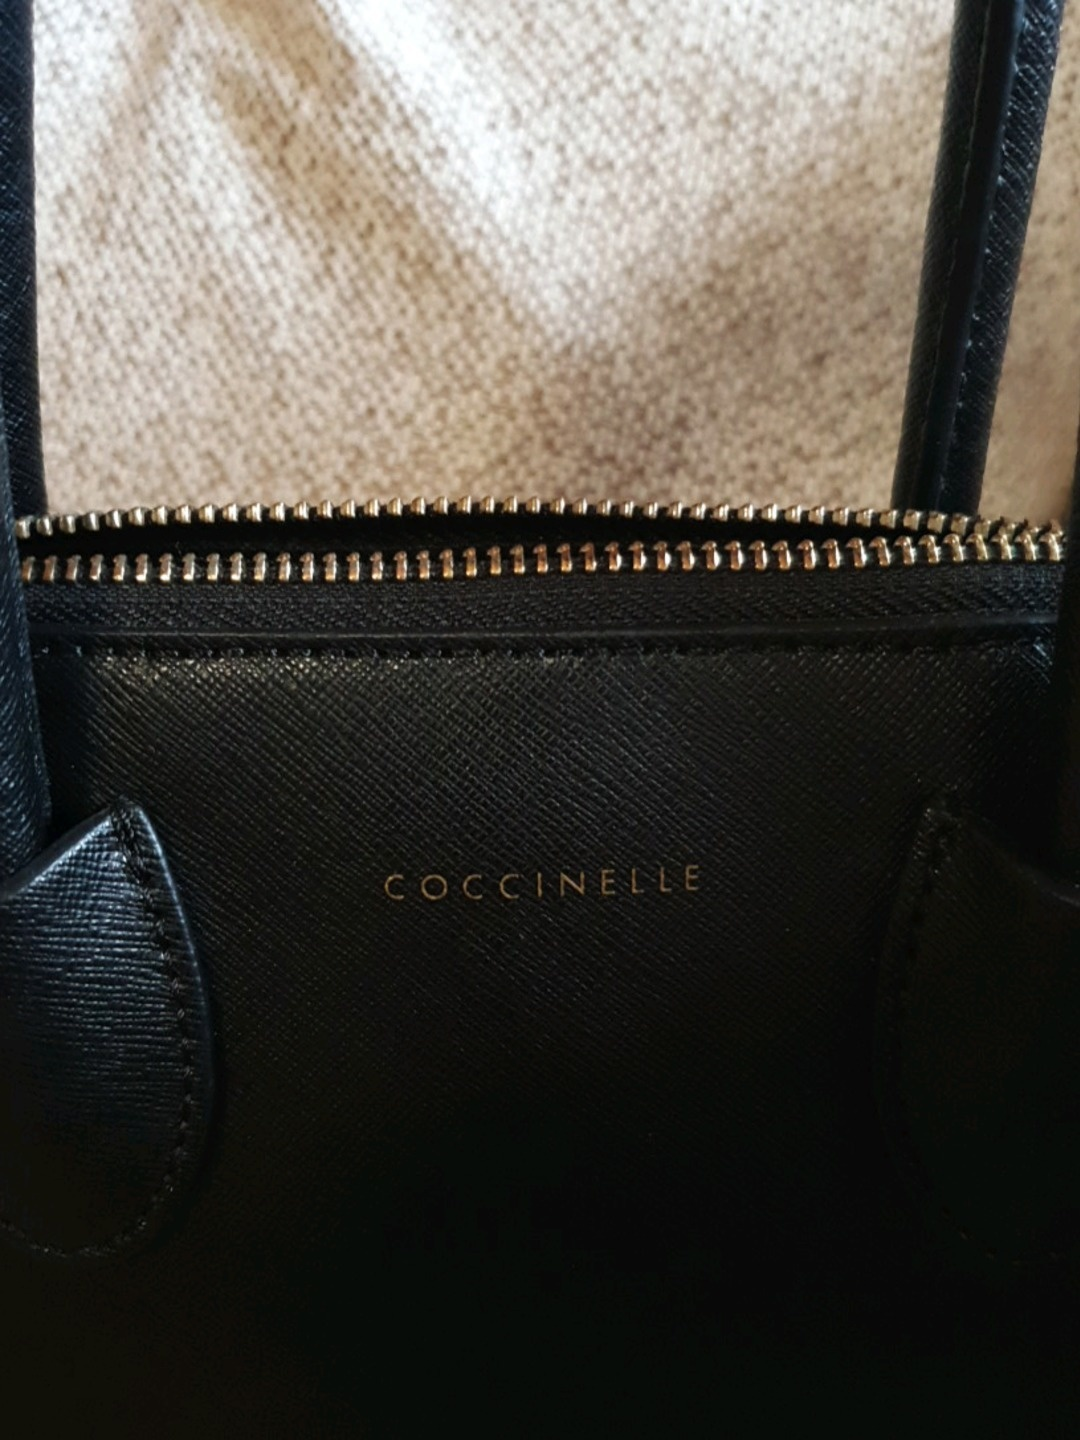 Women's bags & purses - COCCINELLE photo 2